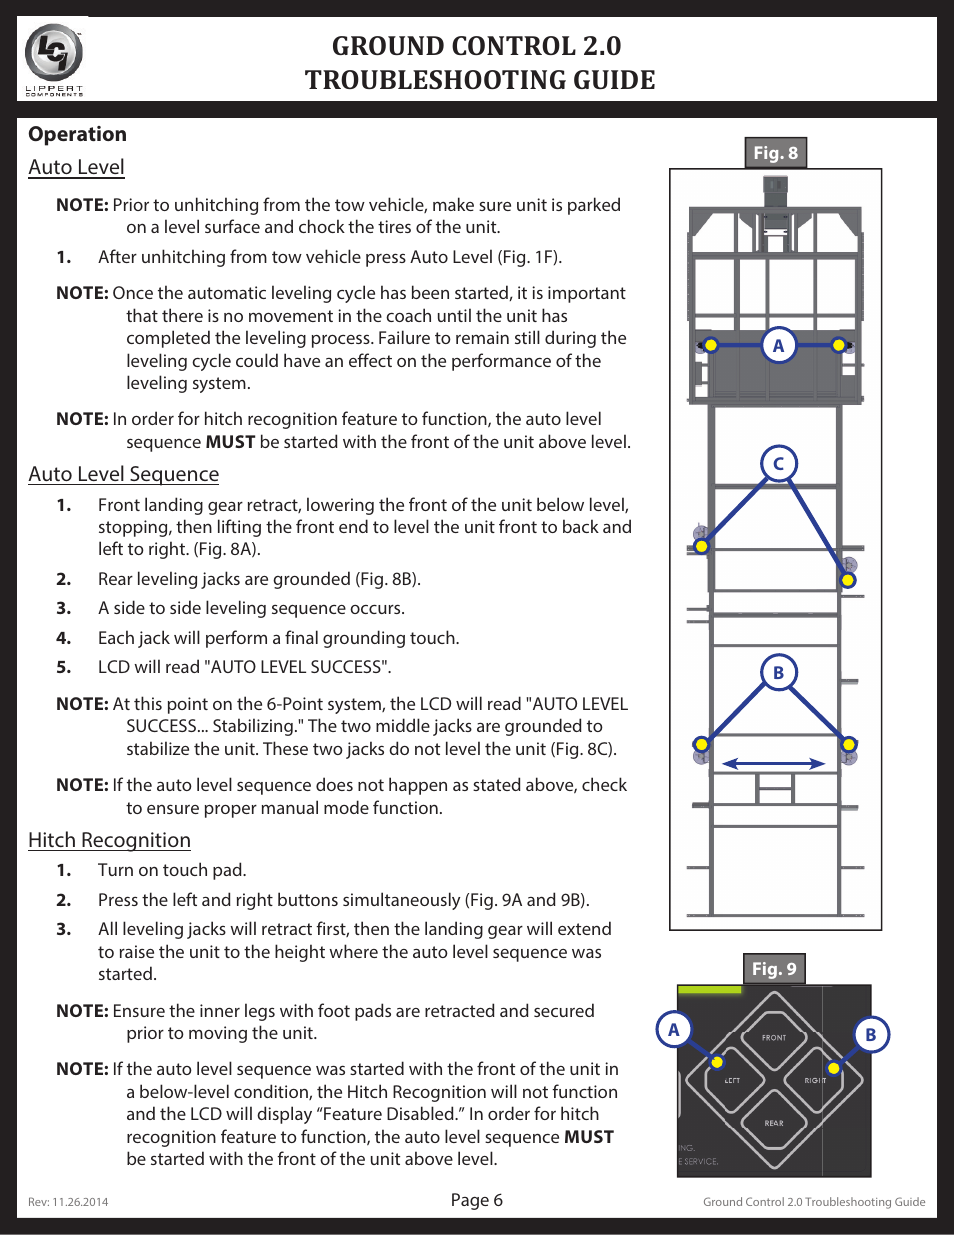 Ground control 2 0 troubleshooting guide | Lippert